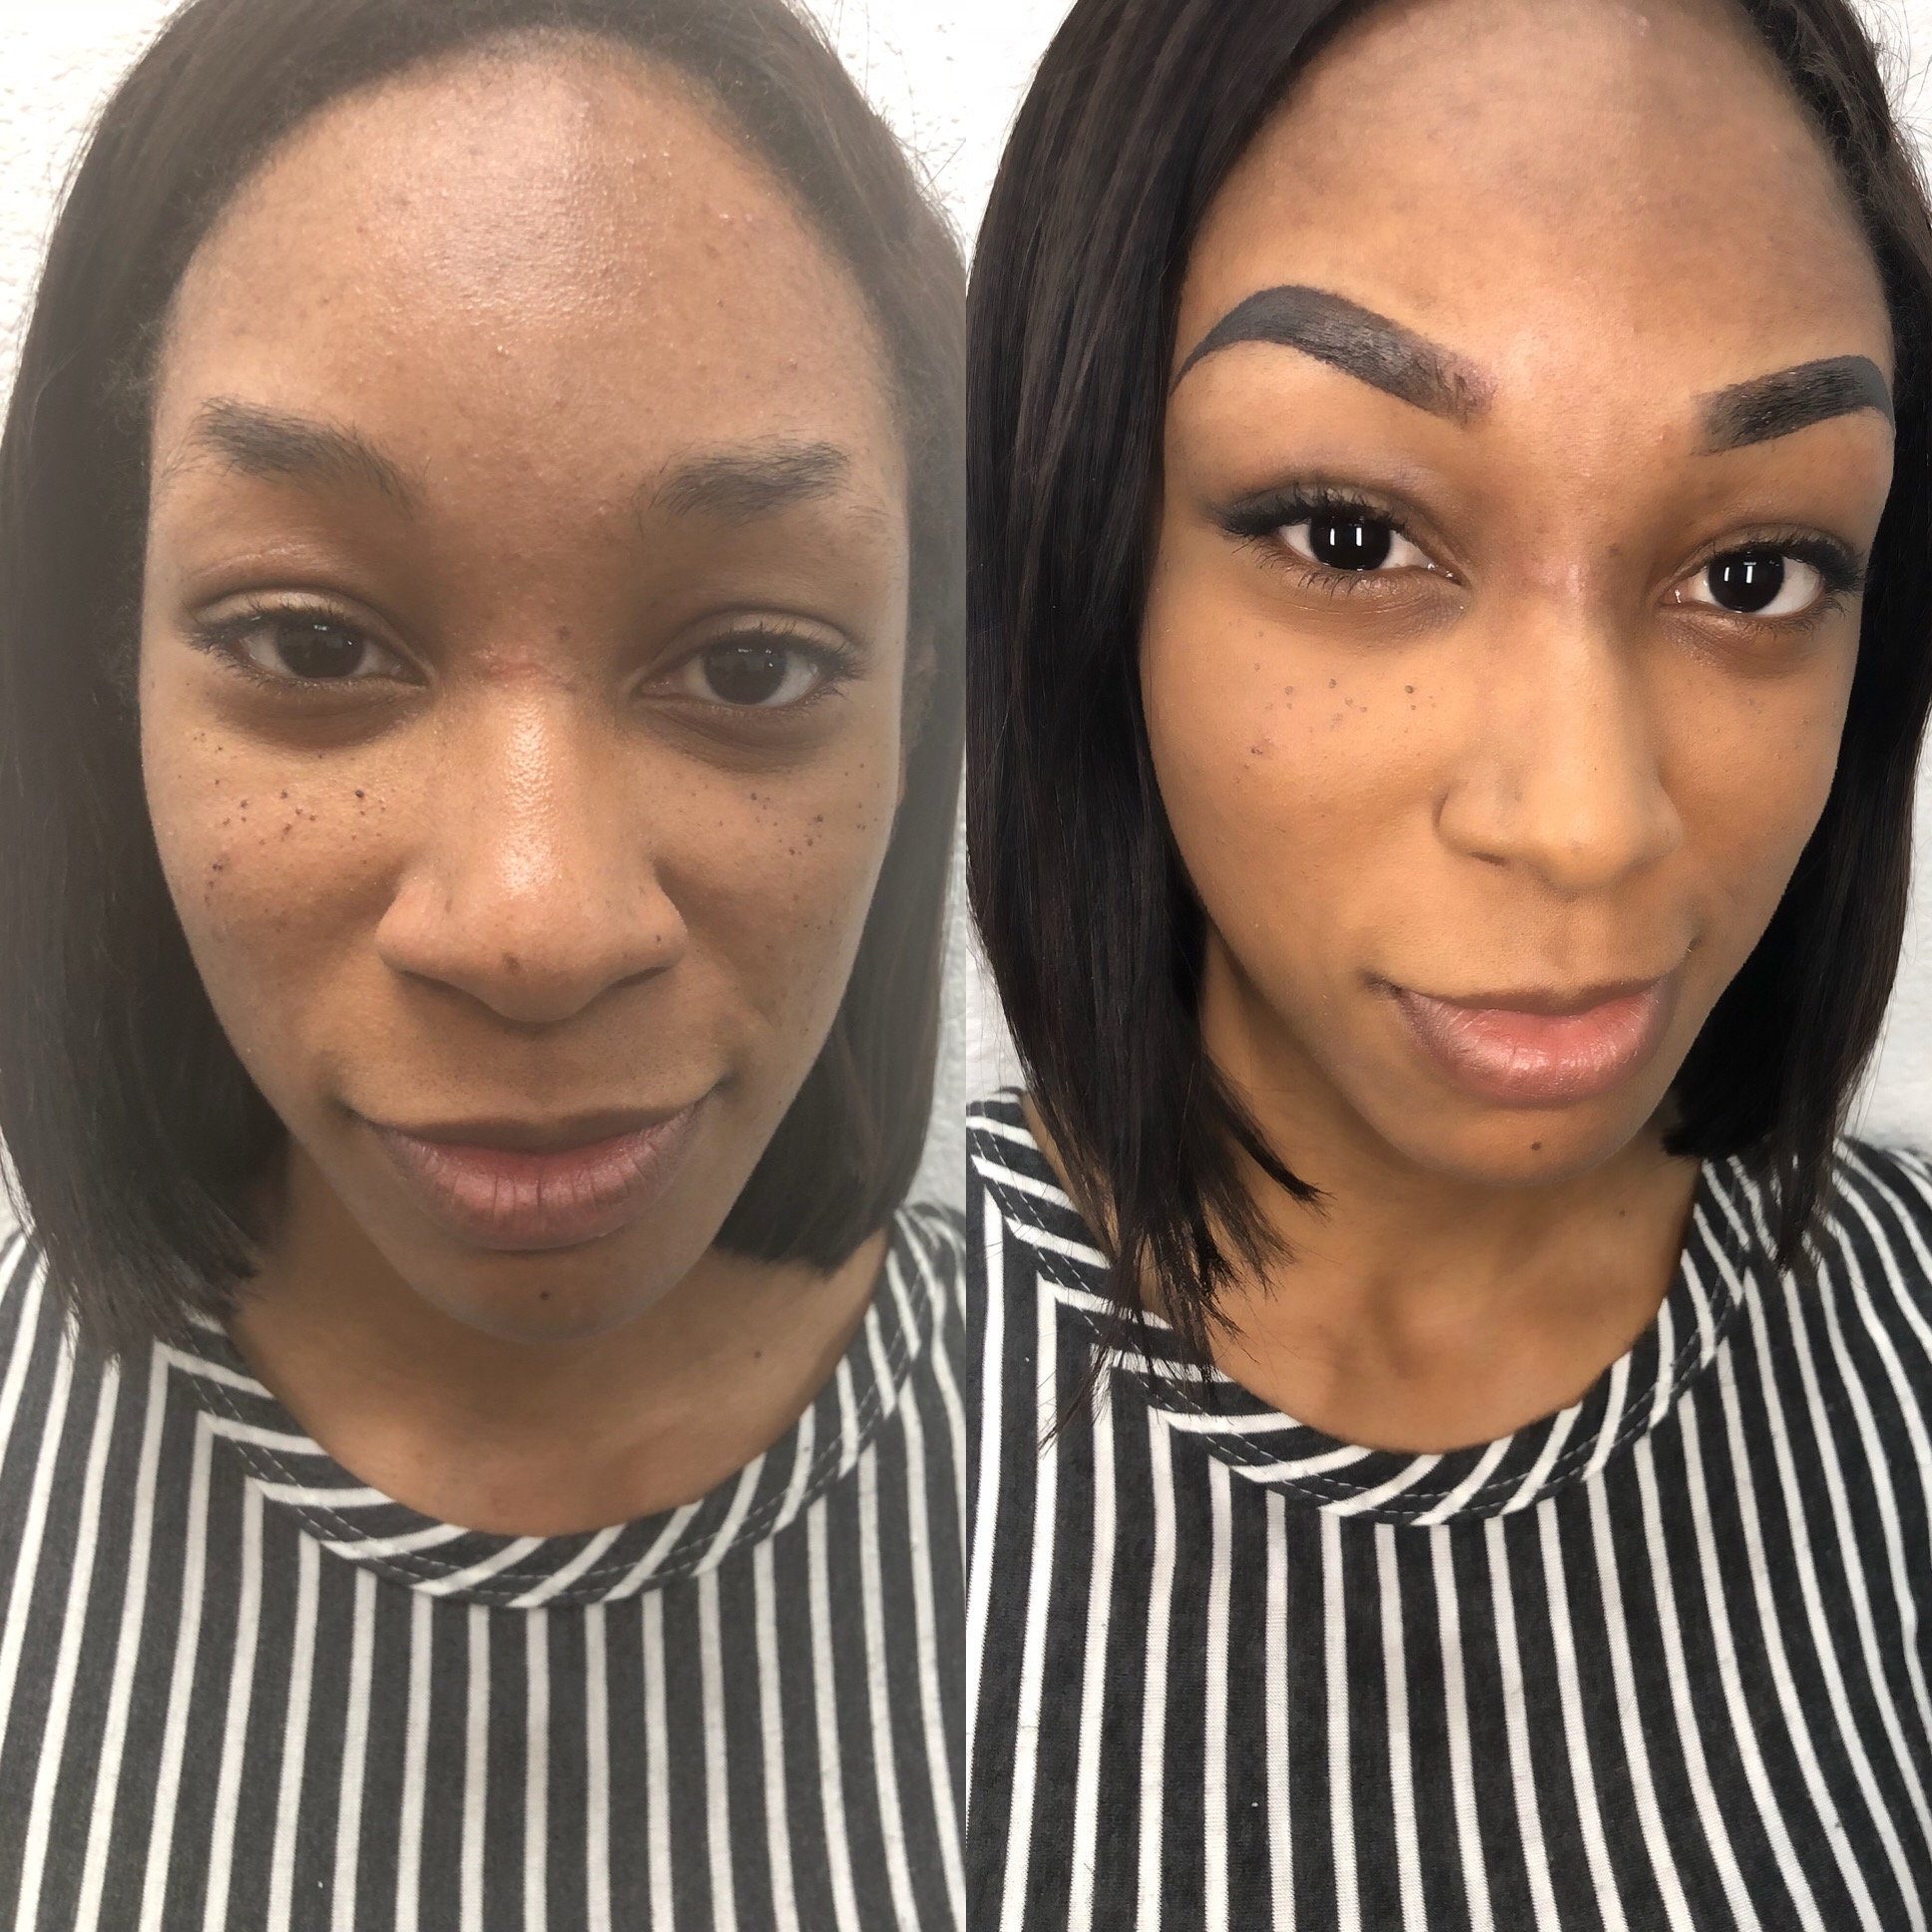 andrea at the microblading institute